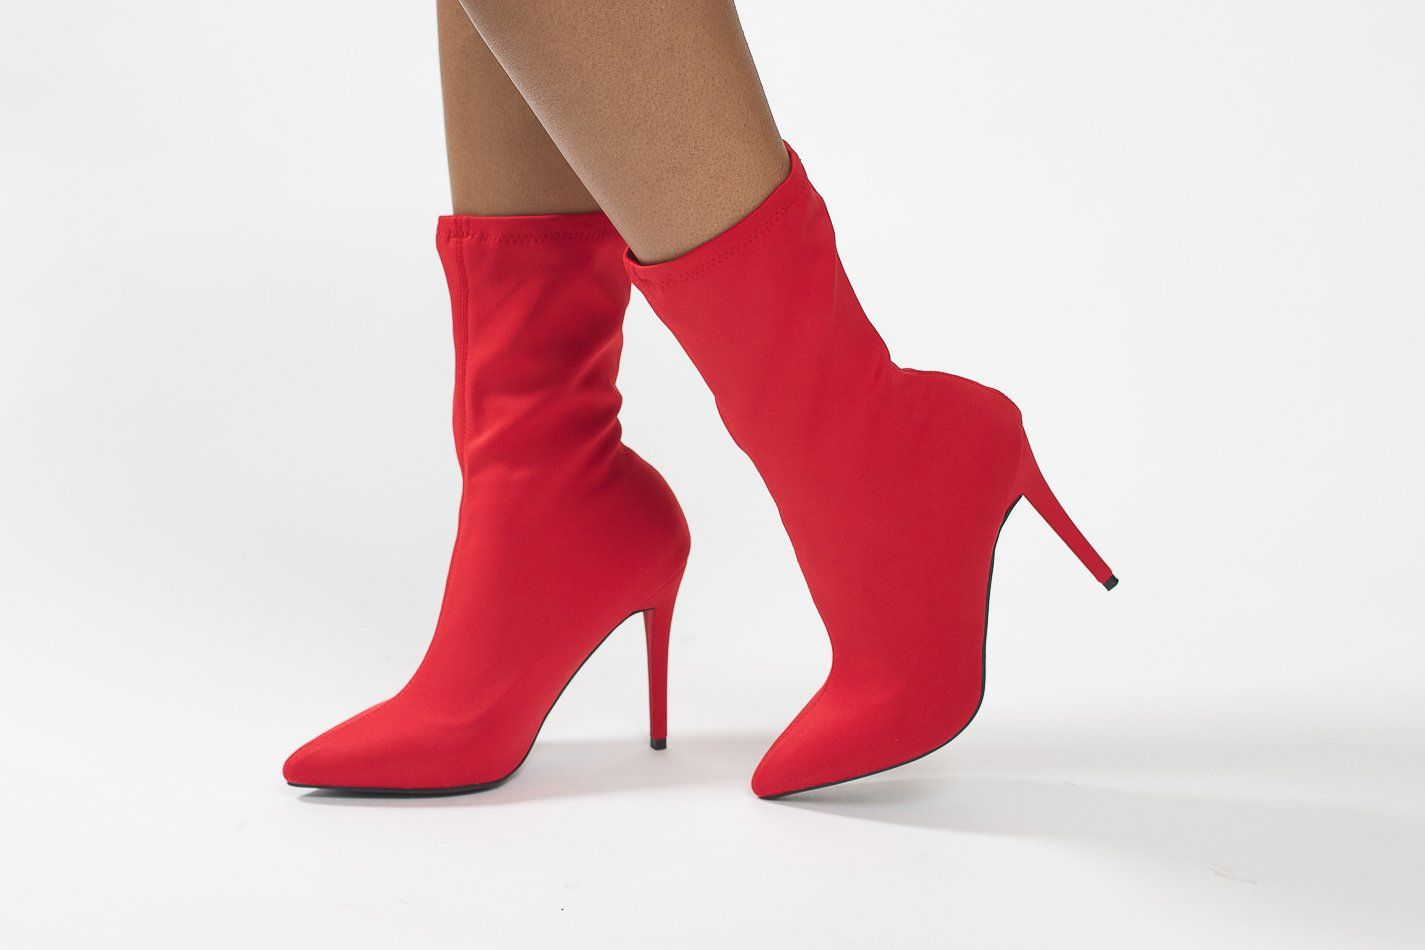 542fdce7b7d4a Vivian Red Lycra Pointy Toe Booties | Shoes | Pinterest | Red, Red ...